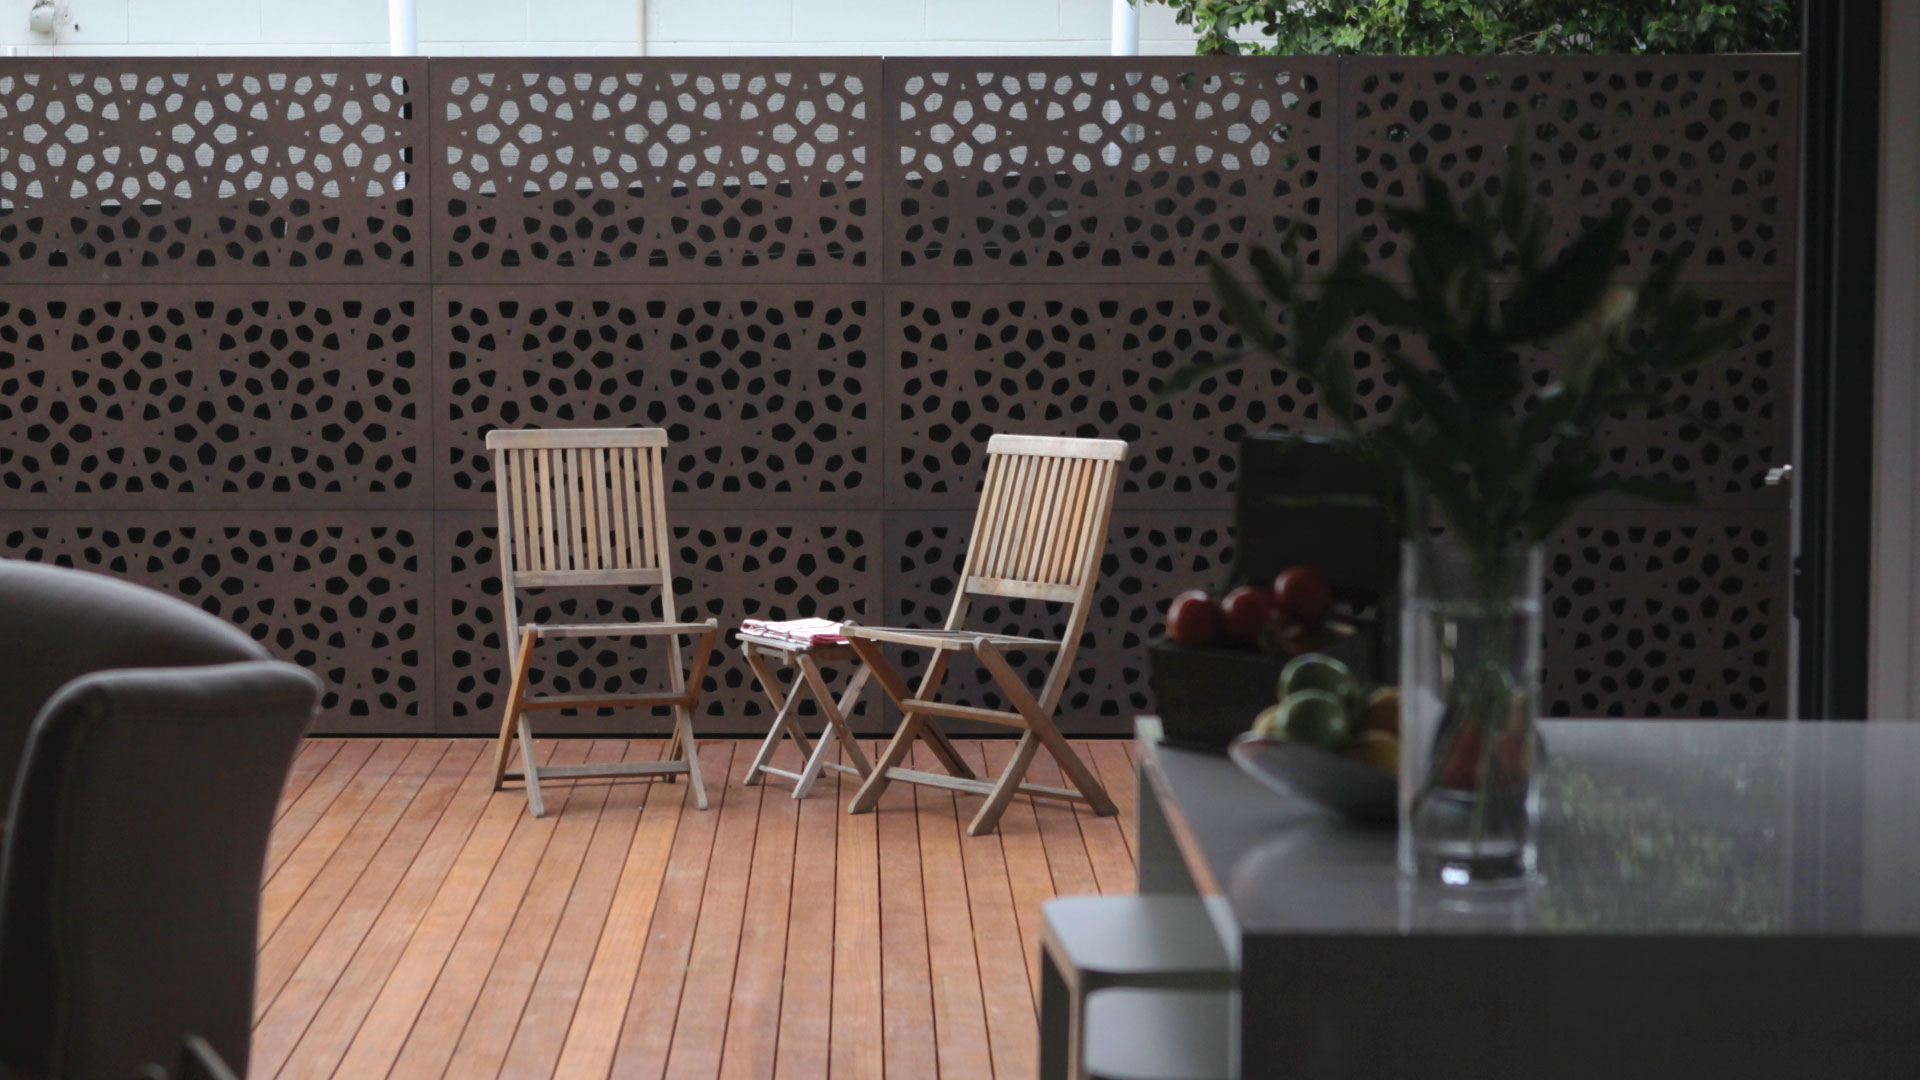 MARAKESH™ 80% Gardenscreen on decked area